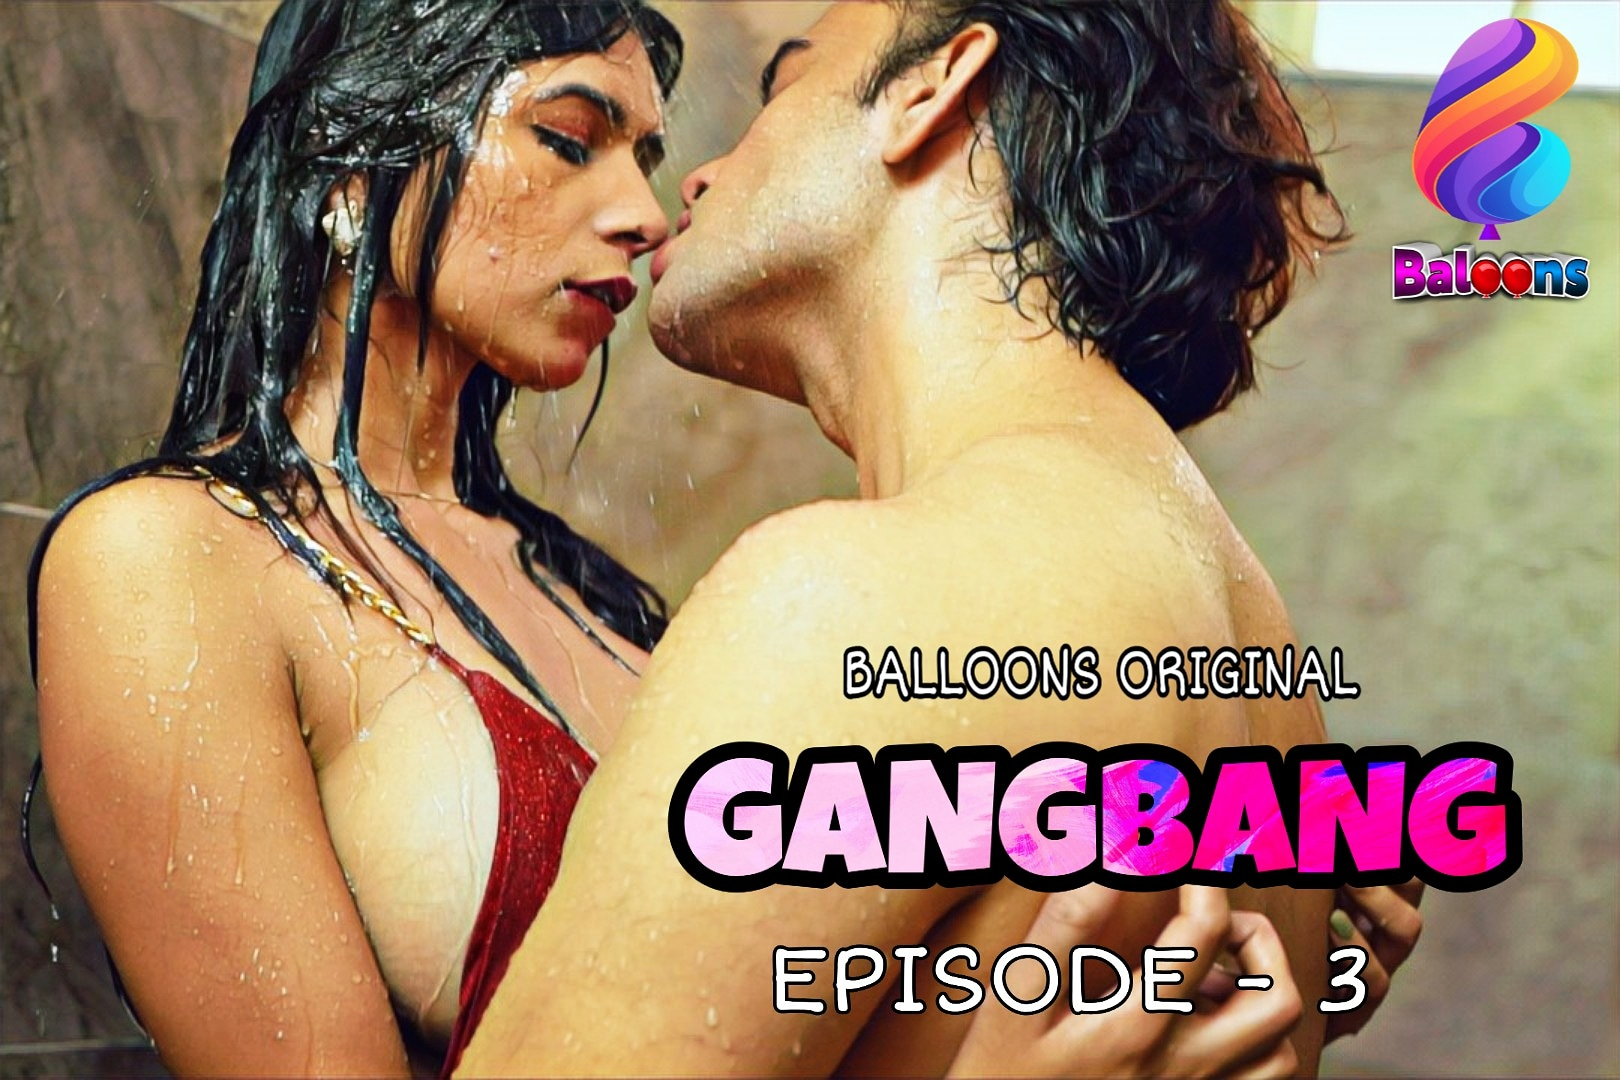 Gang Bang 2020 Balloons Hindi S01E03 Web Series 720p HDRip 200MB Download